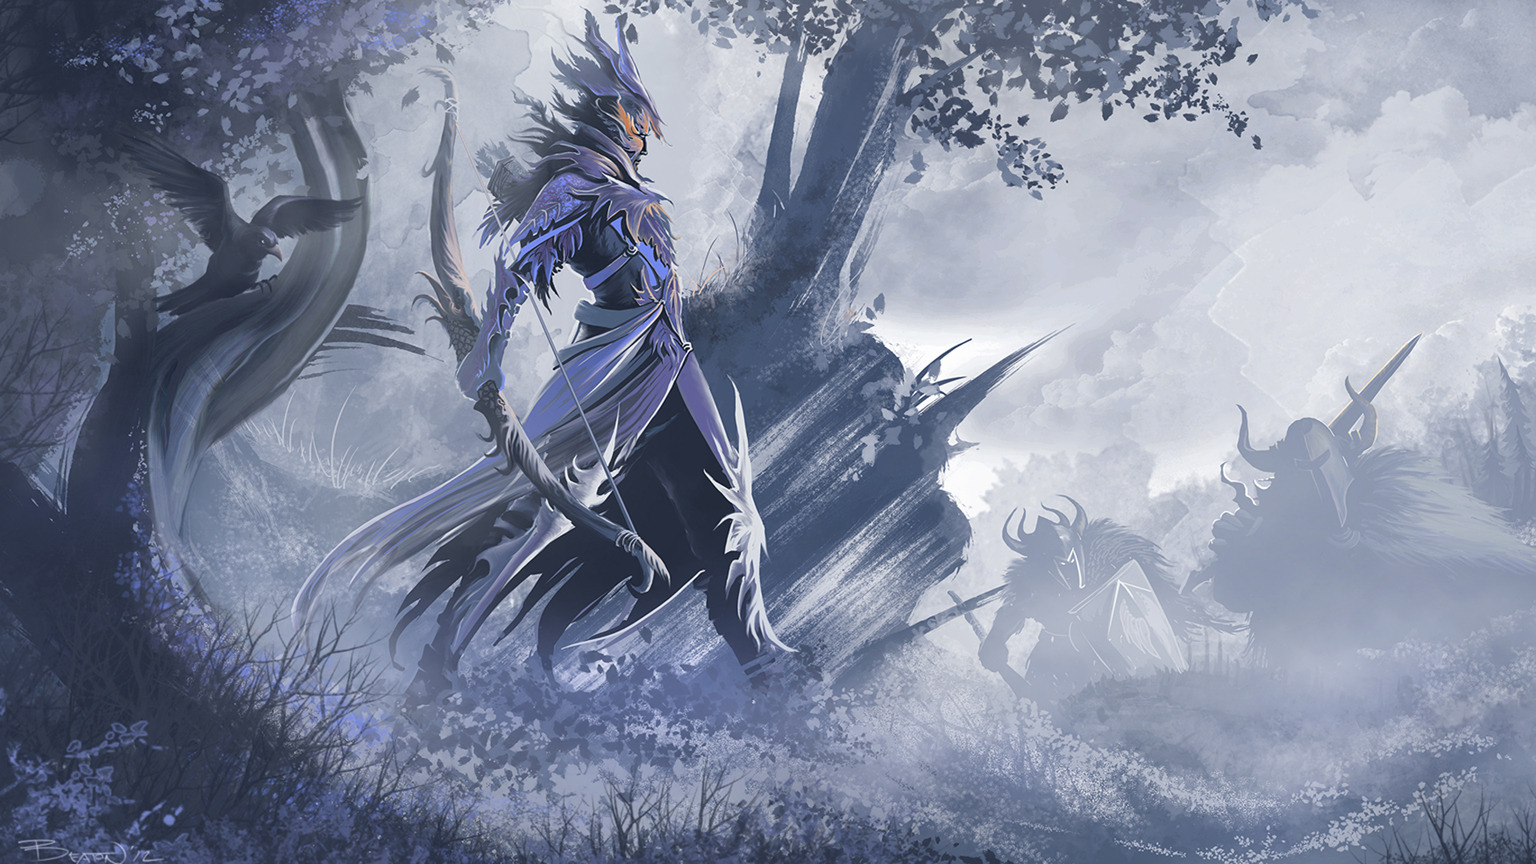 Ranger wallpaper and background image 1536x864 id - Final fantasy 10 wallpaper 1920x1080 ...